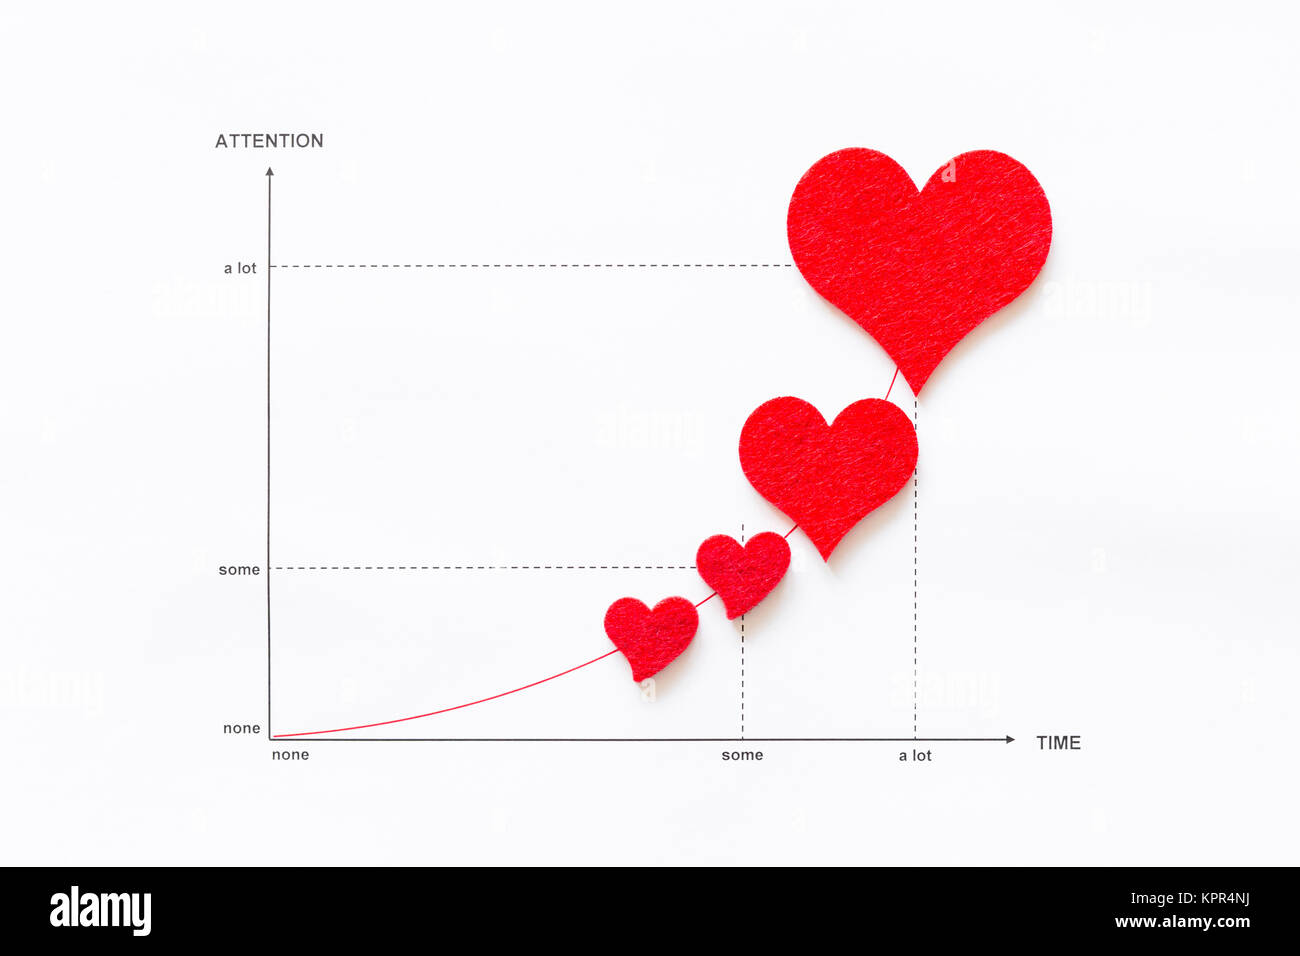 analysis love The aim of this study was to describe a novel extended dynamical love model  with the external environments of the love story of romeo and.